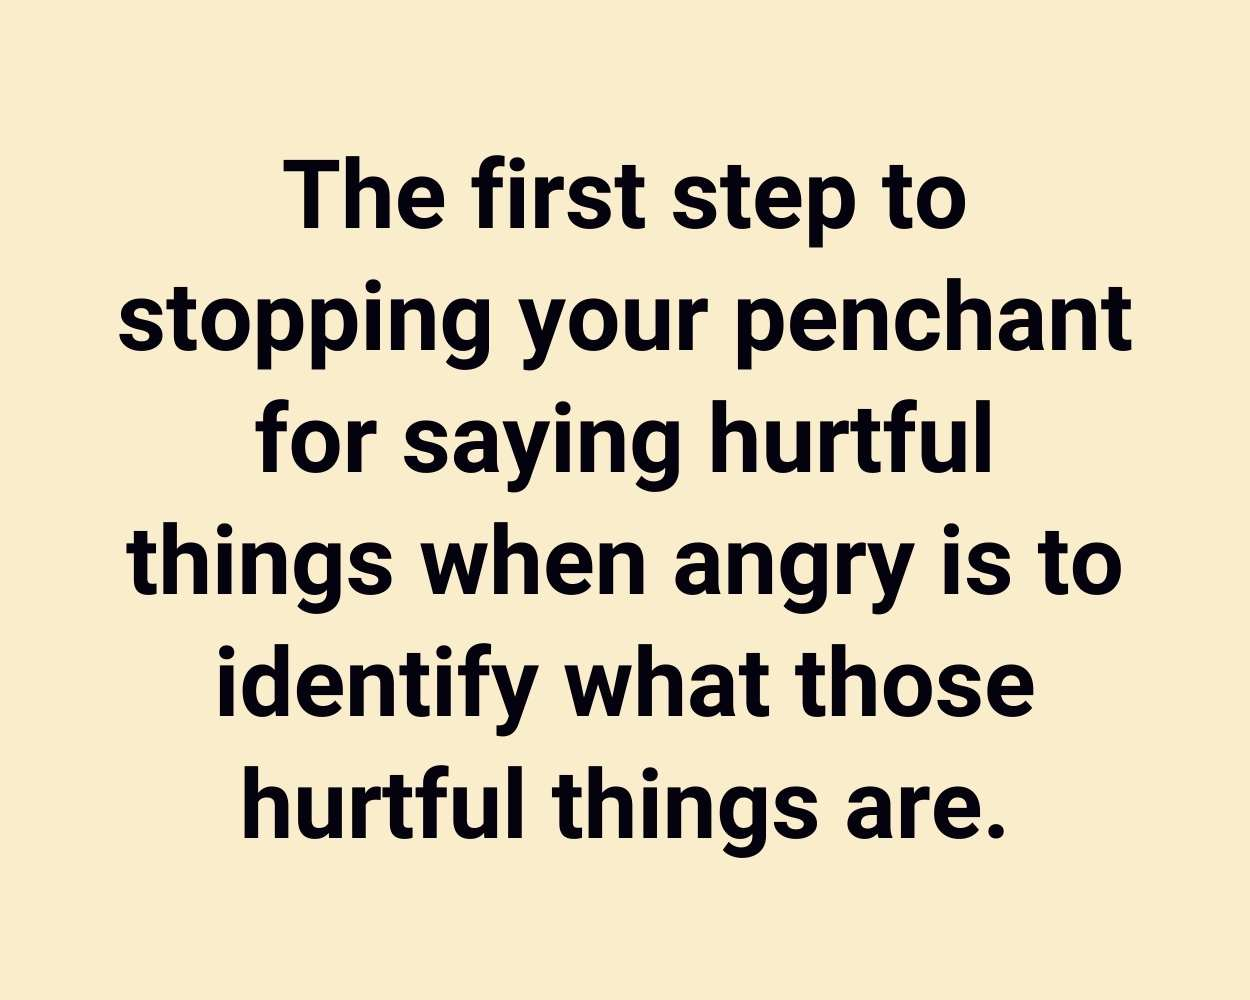 The first step to stopping your penchant for saying hurtful things when angry is to identify what those hurtful things are.